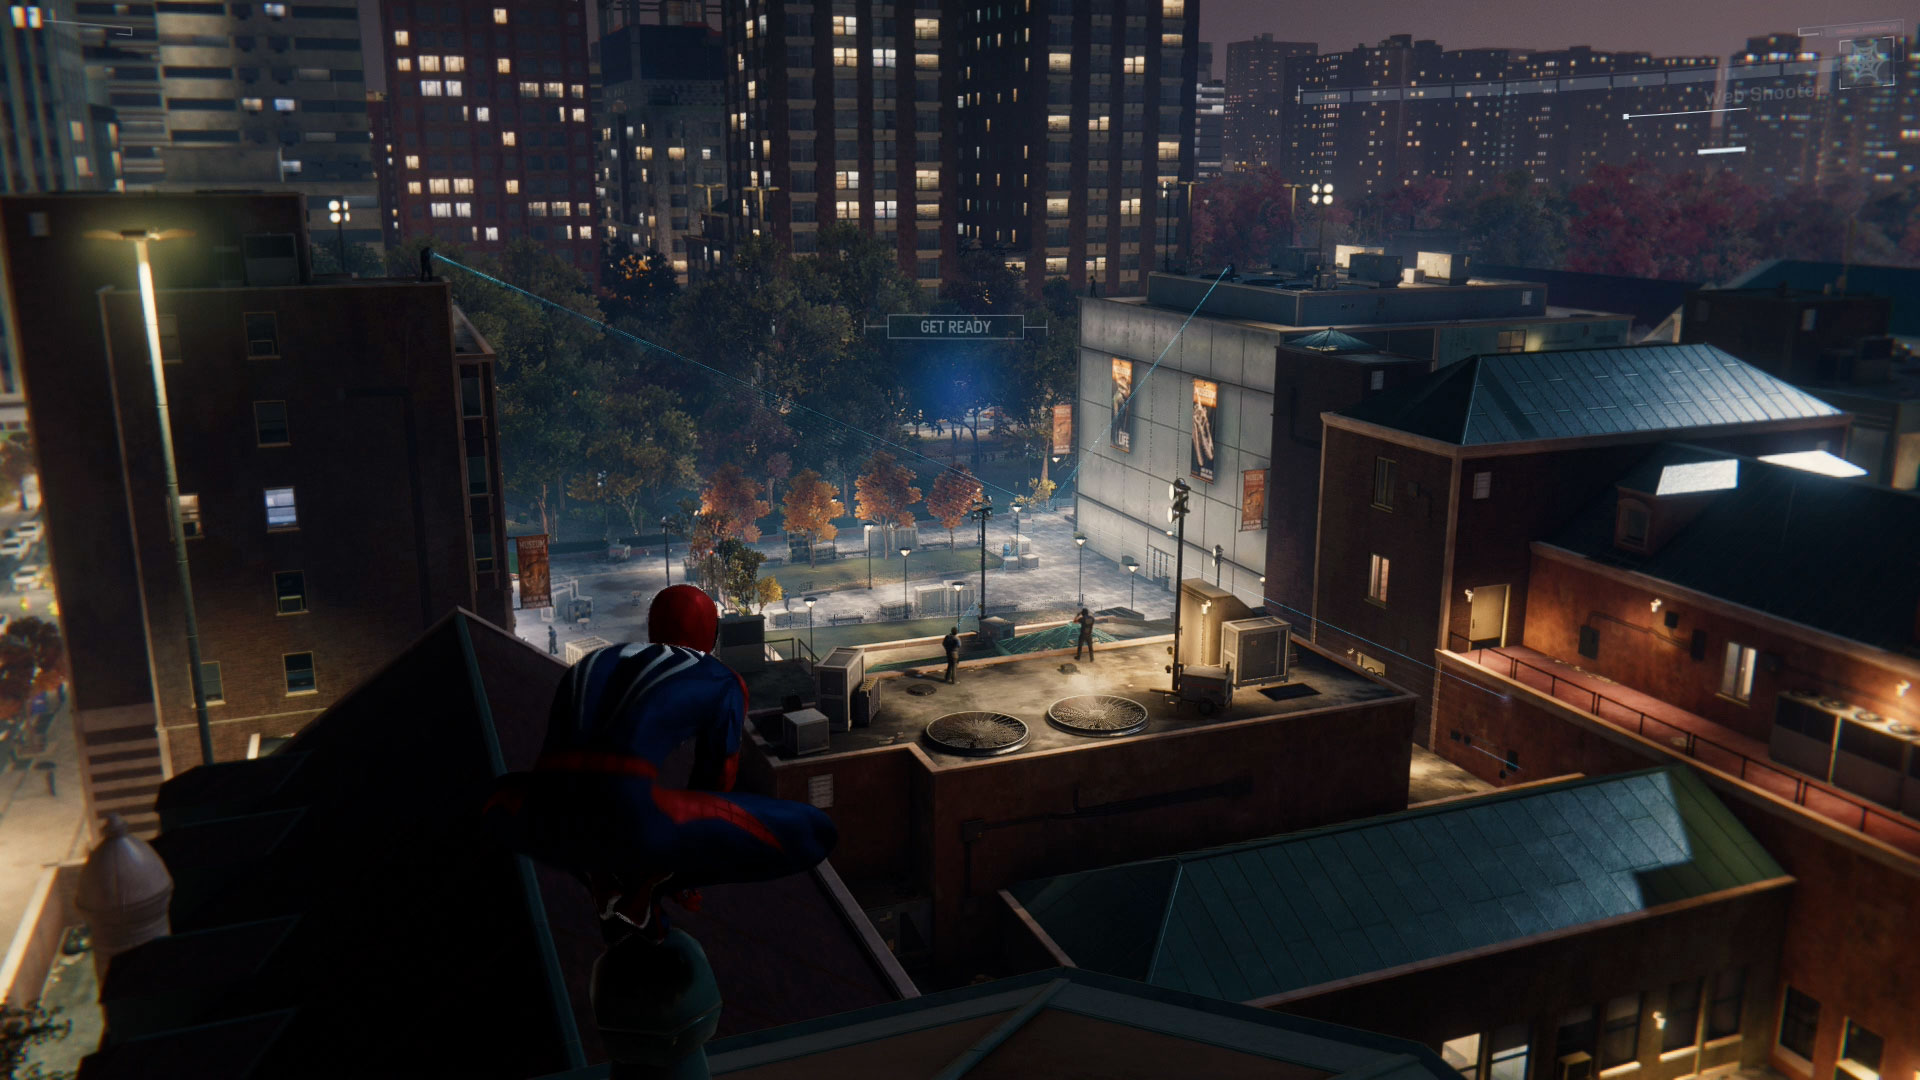 Spider-Man PS4 Stealth Challenge guide